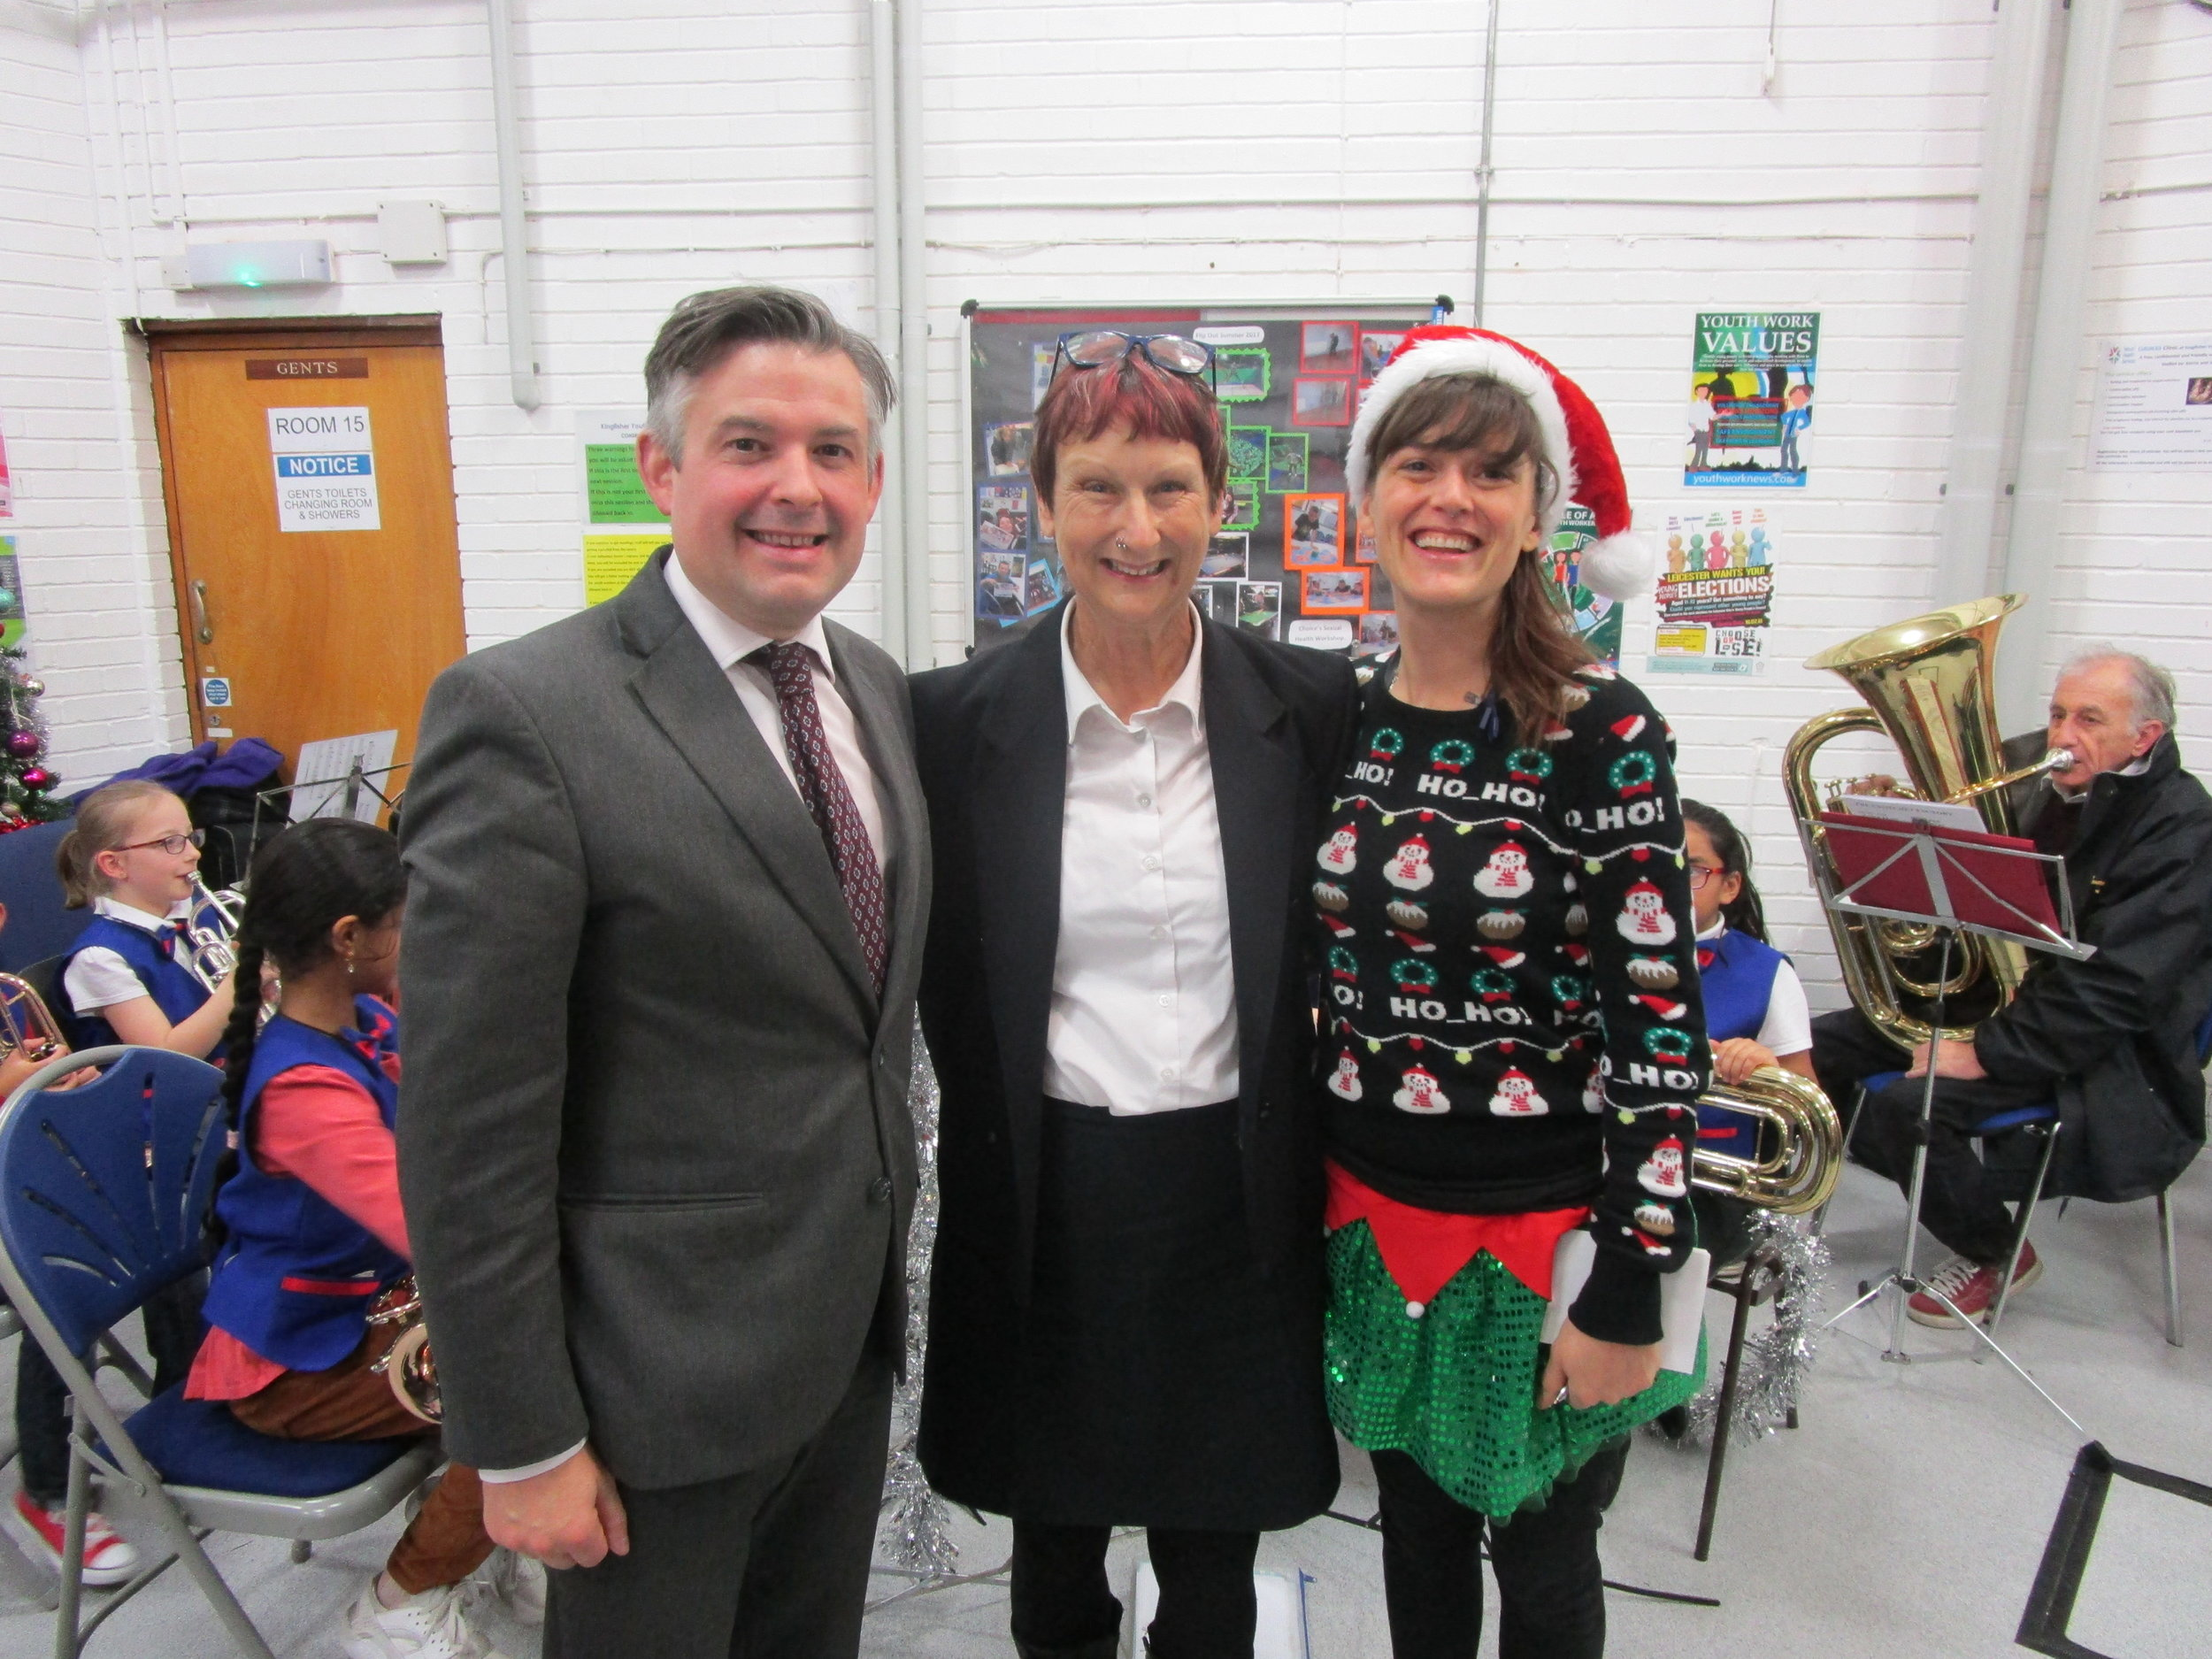 Jon opens the Saffron Christmas Celebration event which is organised by residents with help from local Councillors Elly Cutkelvin and Bill Shelton - Friday December 7 2018